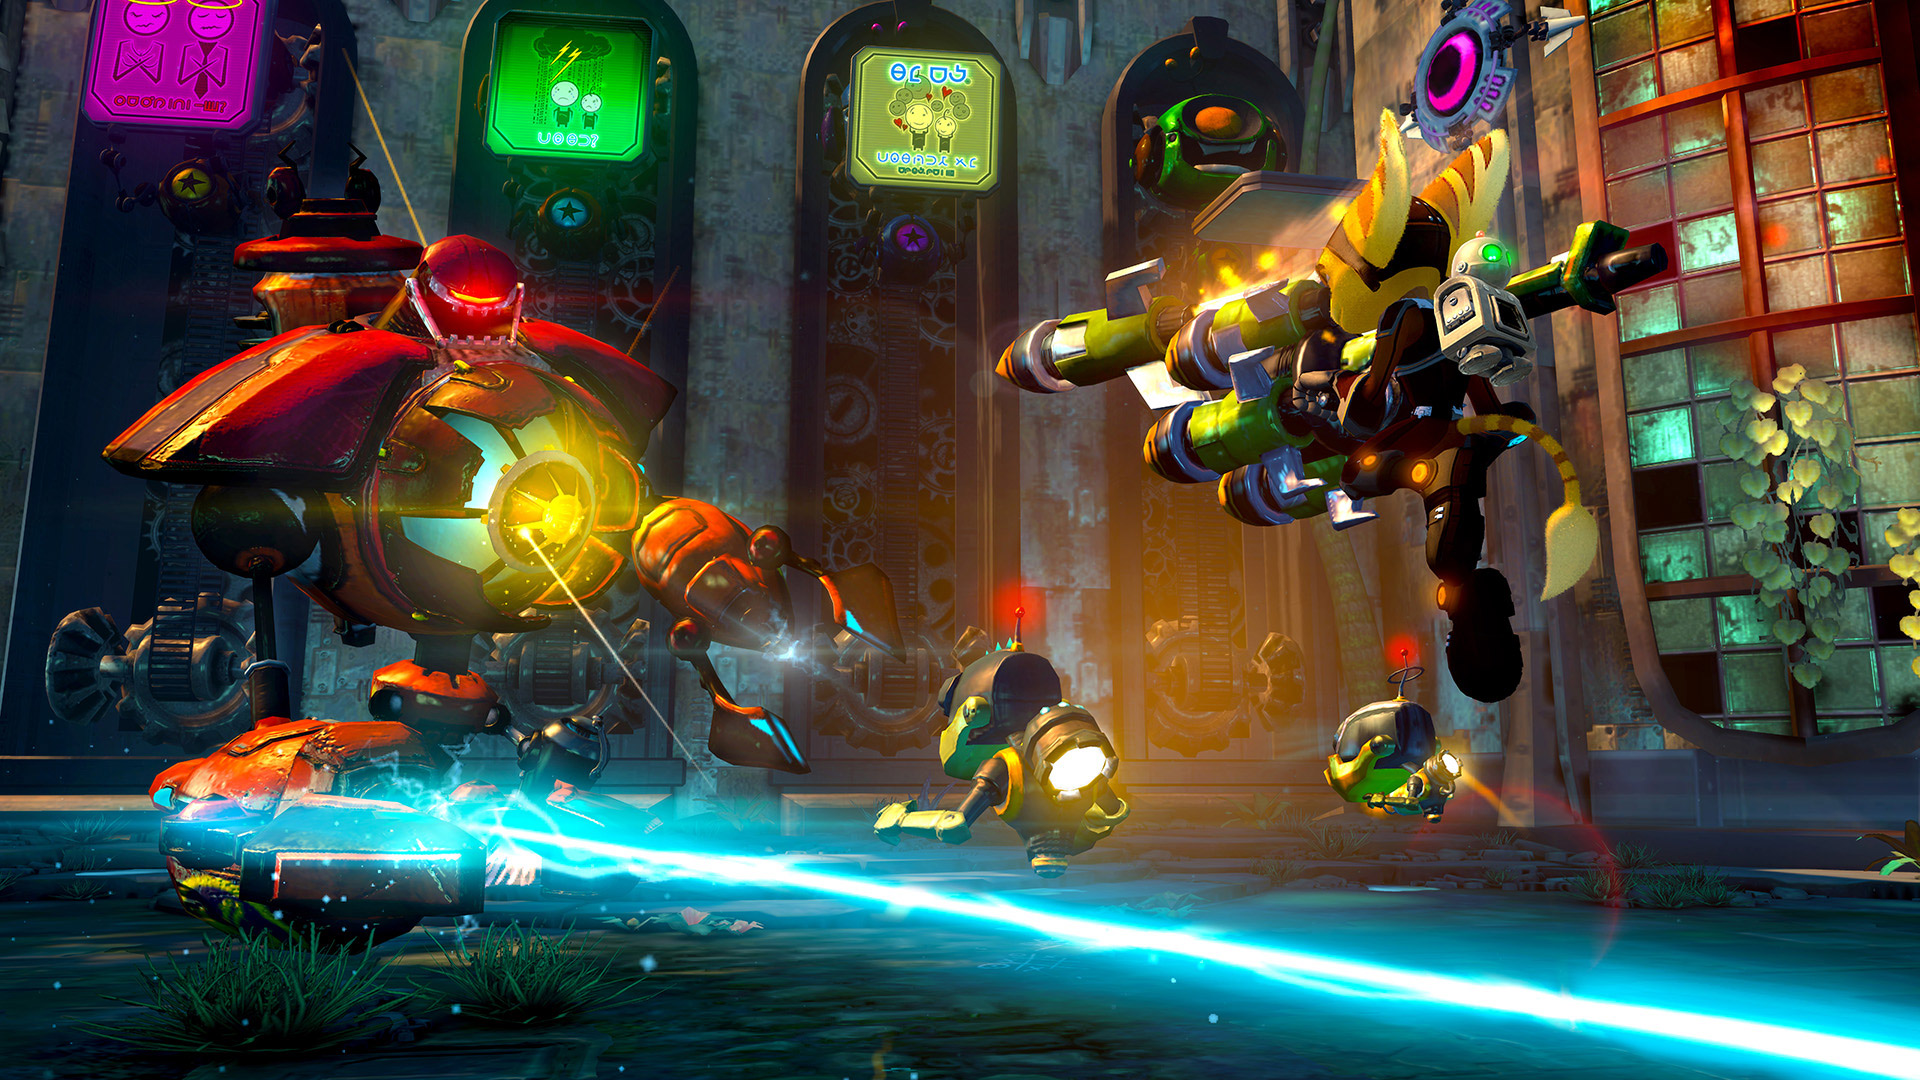 Ratchet & Clank bid PS3 farewell with Into the Nexus, a game with more gravity